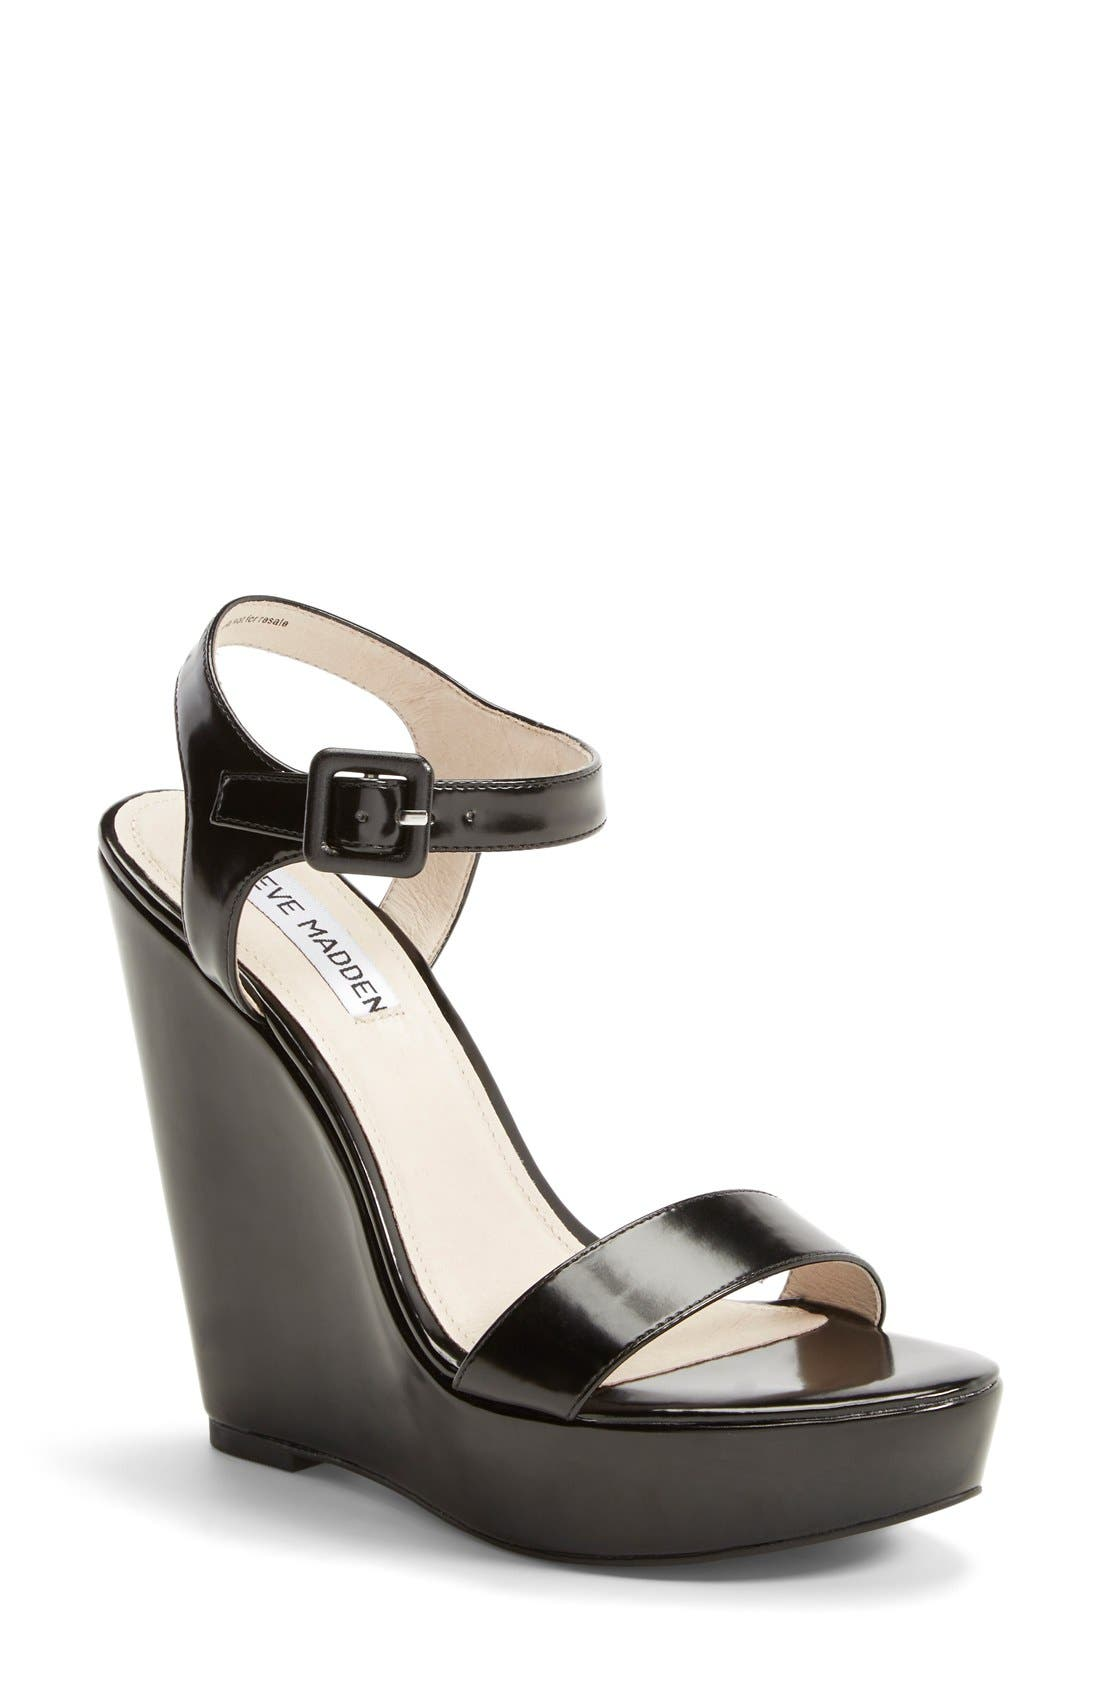 Alternate Image 1 Selected - Steve Madden 'Prestine' Wedge Sandal (Women)